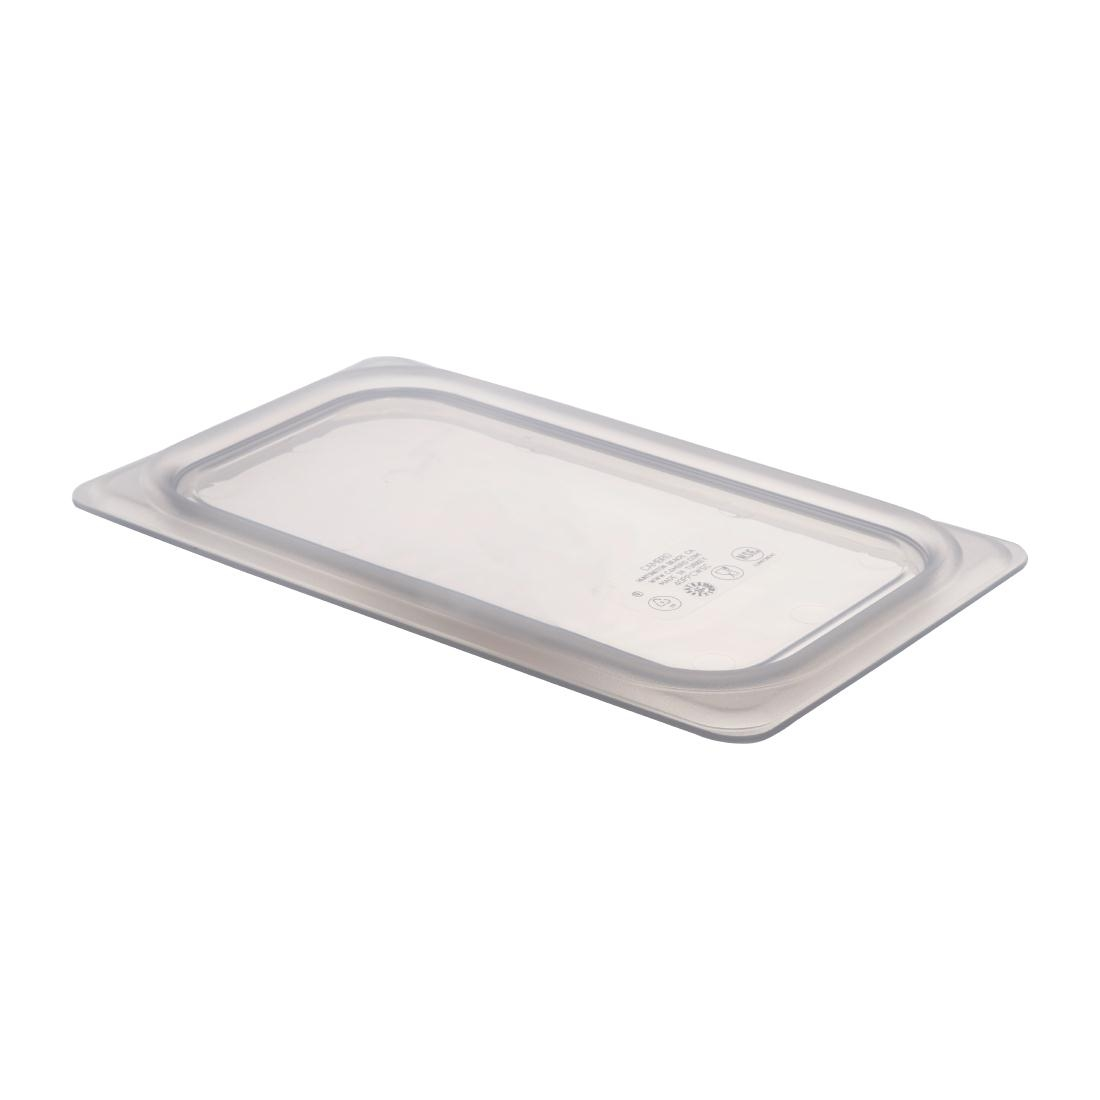 Cambro Gastronorm Pan 1/4 Soft Seal Lid